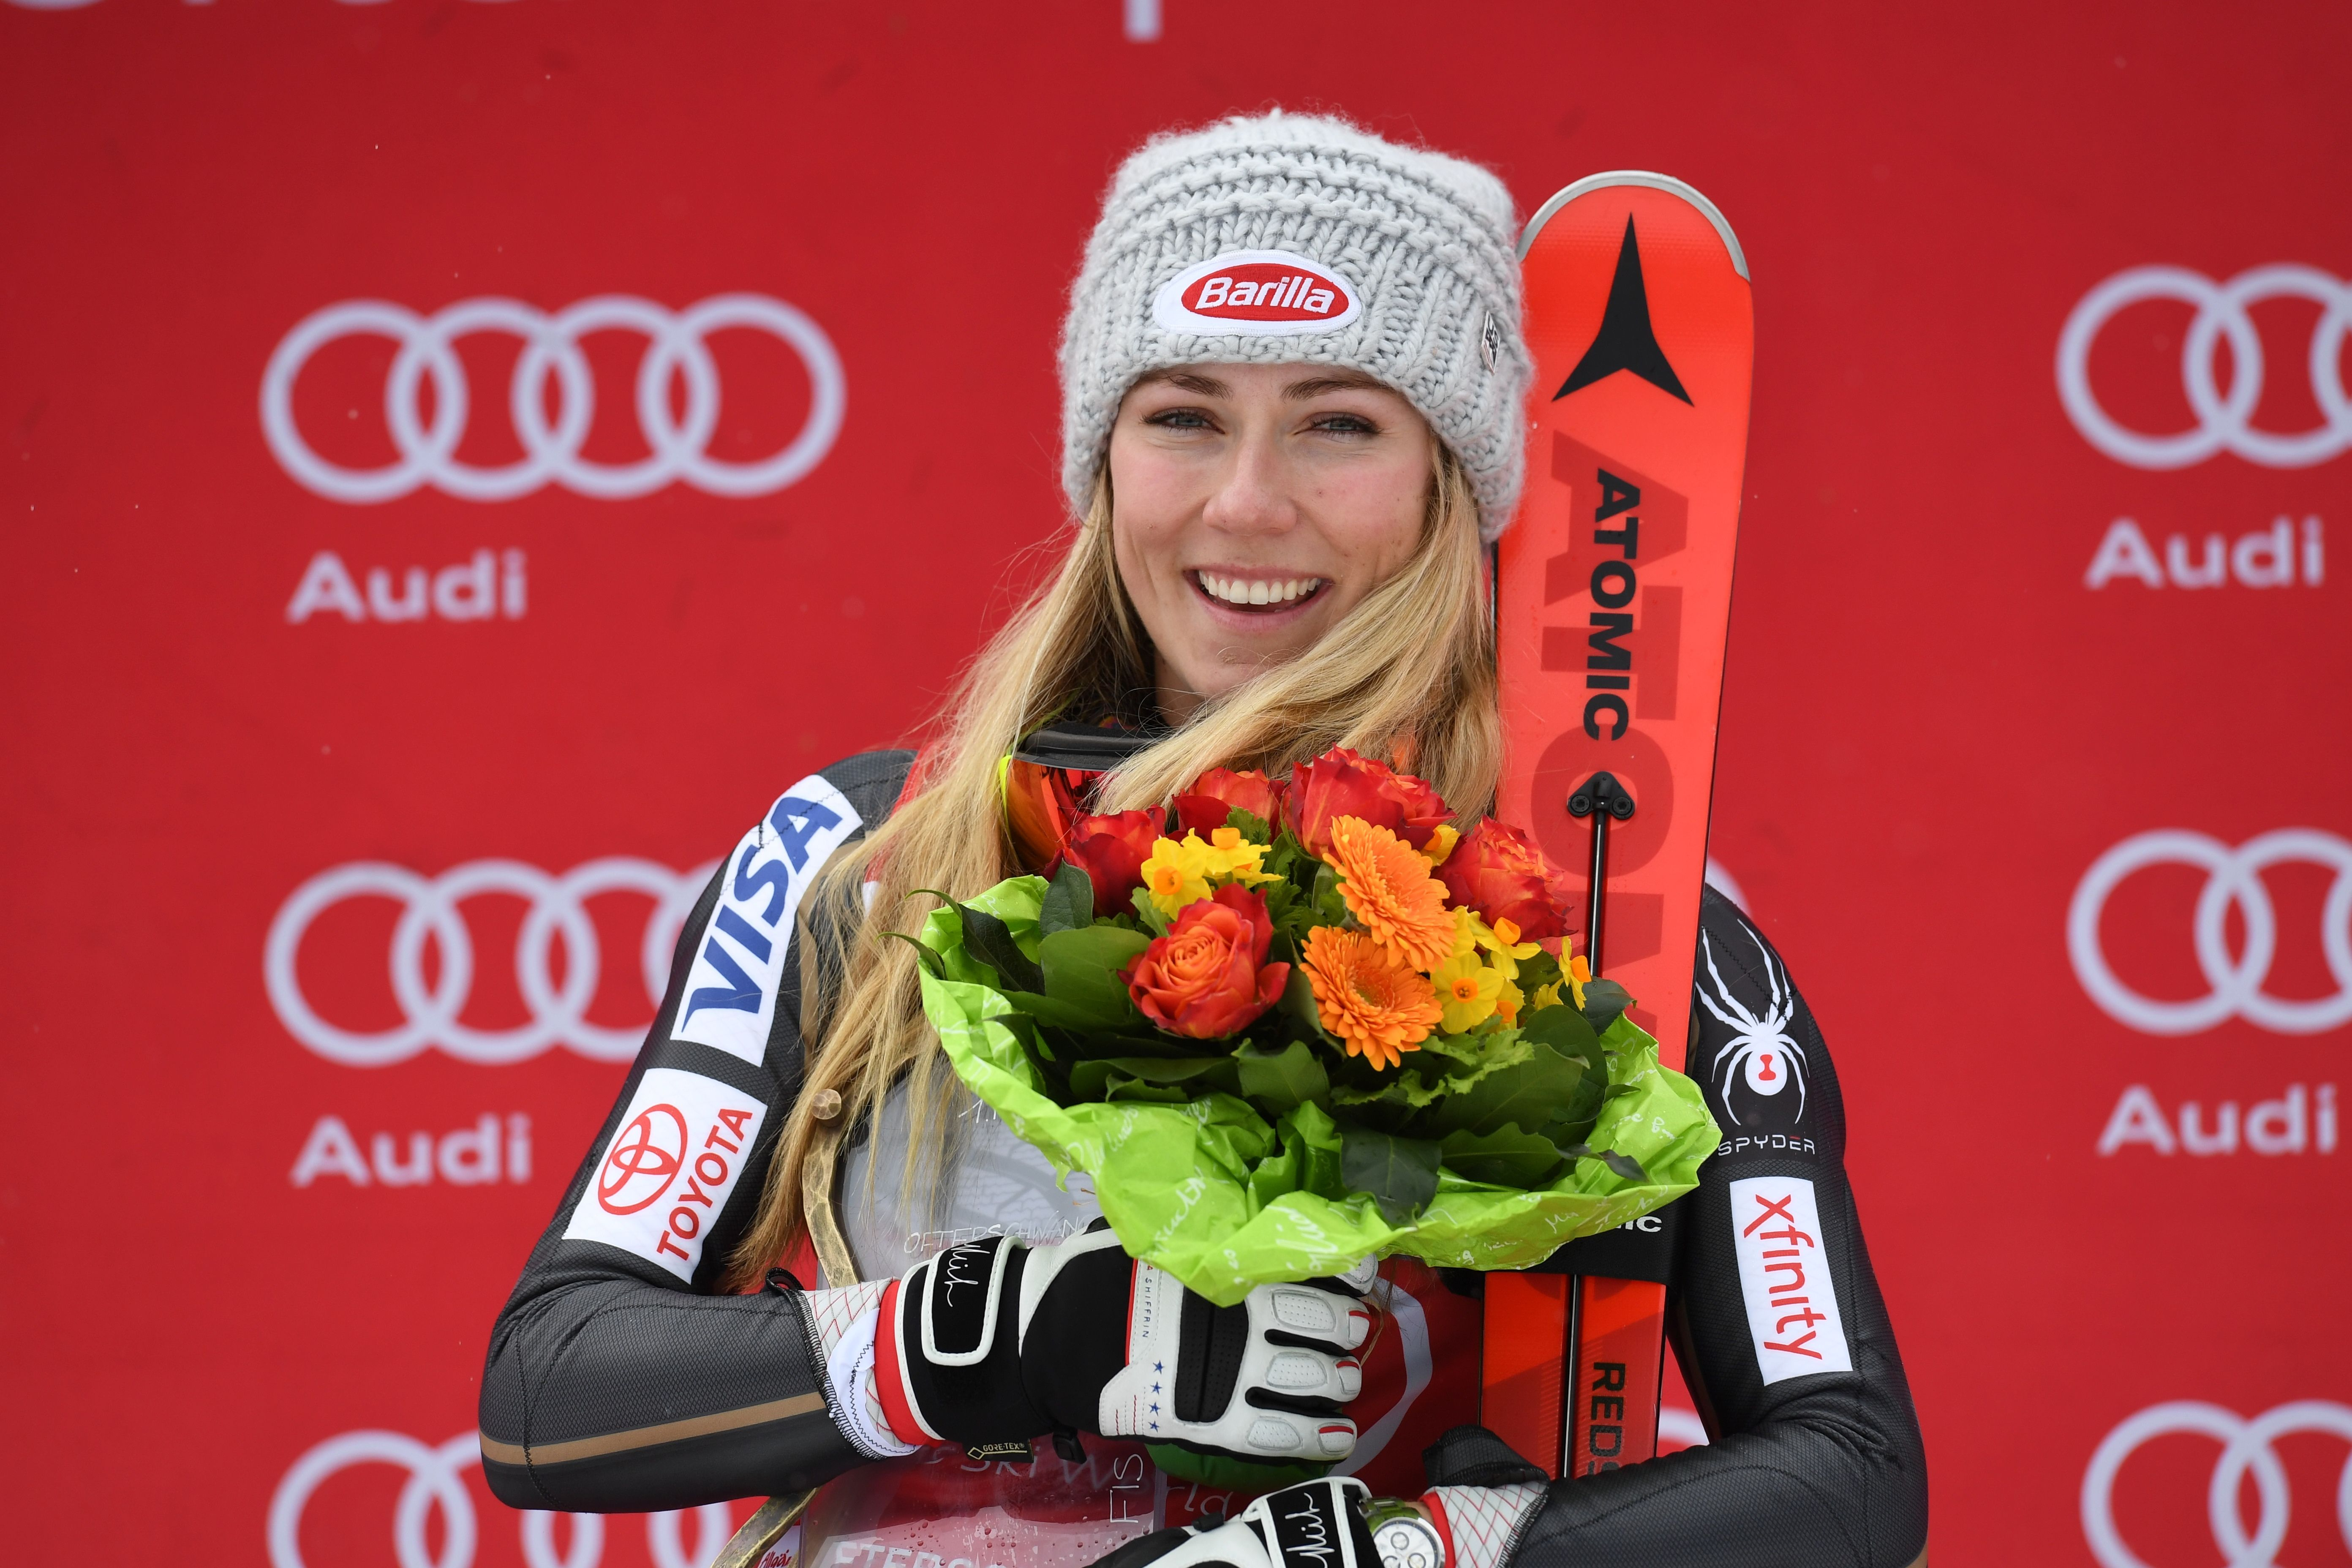 Mikaela Shiffrin Featured on Adweek Cover